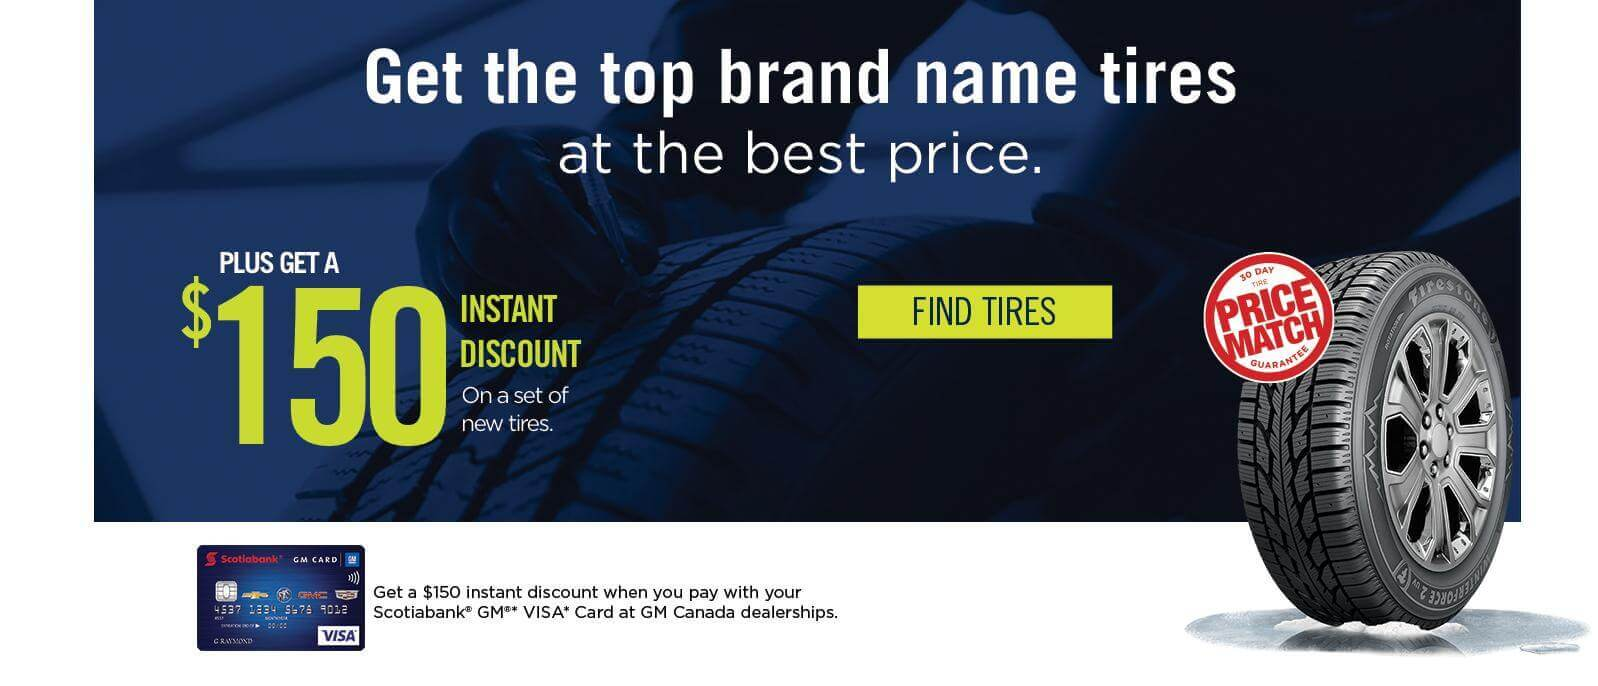 Get the top brand name tires